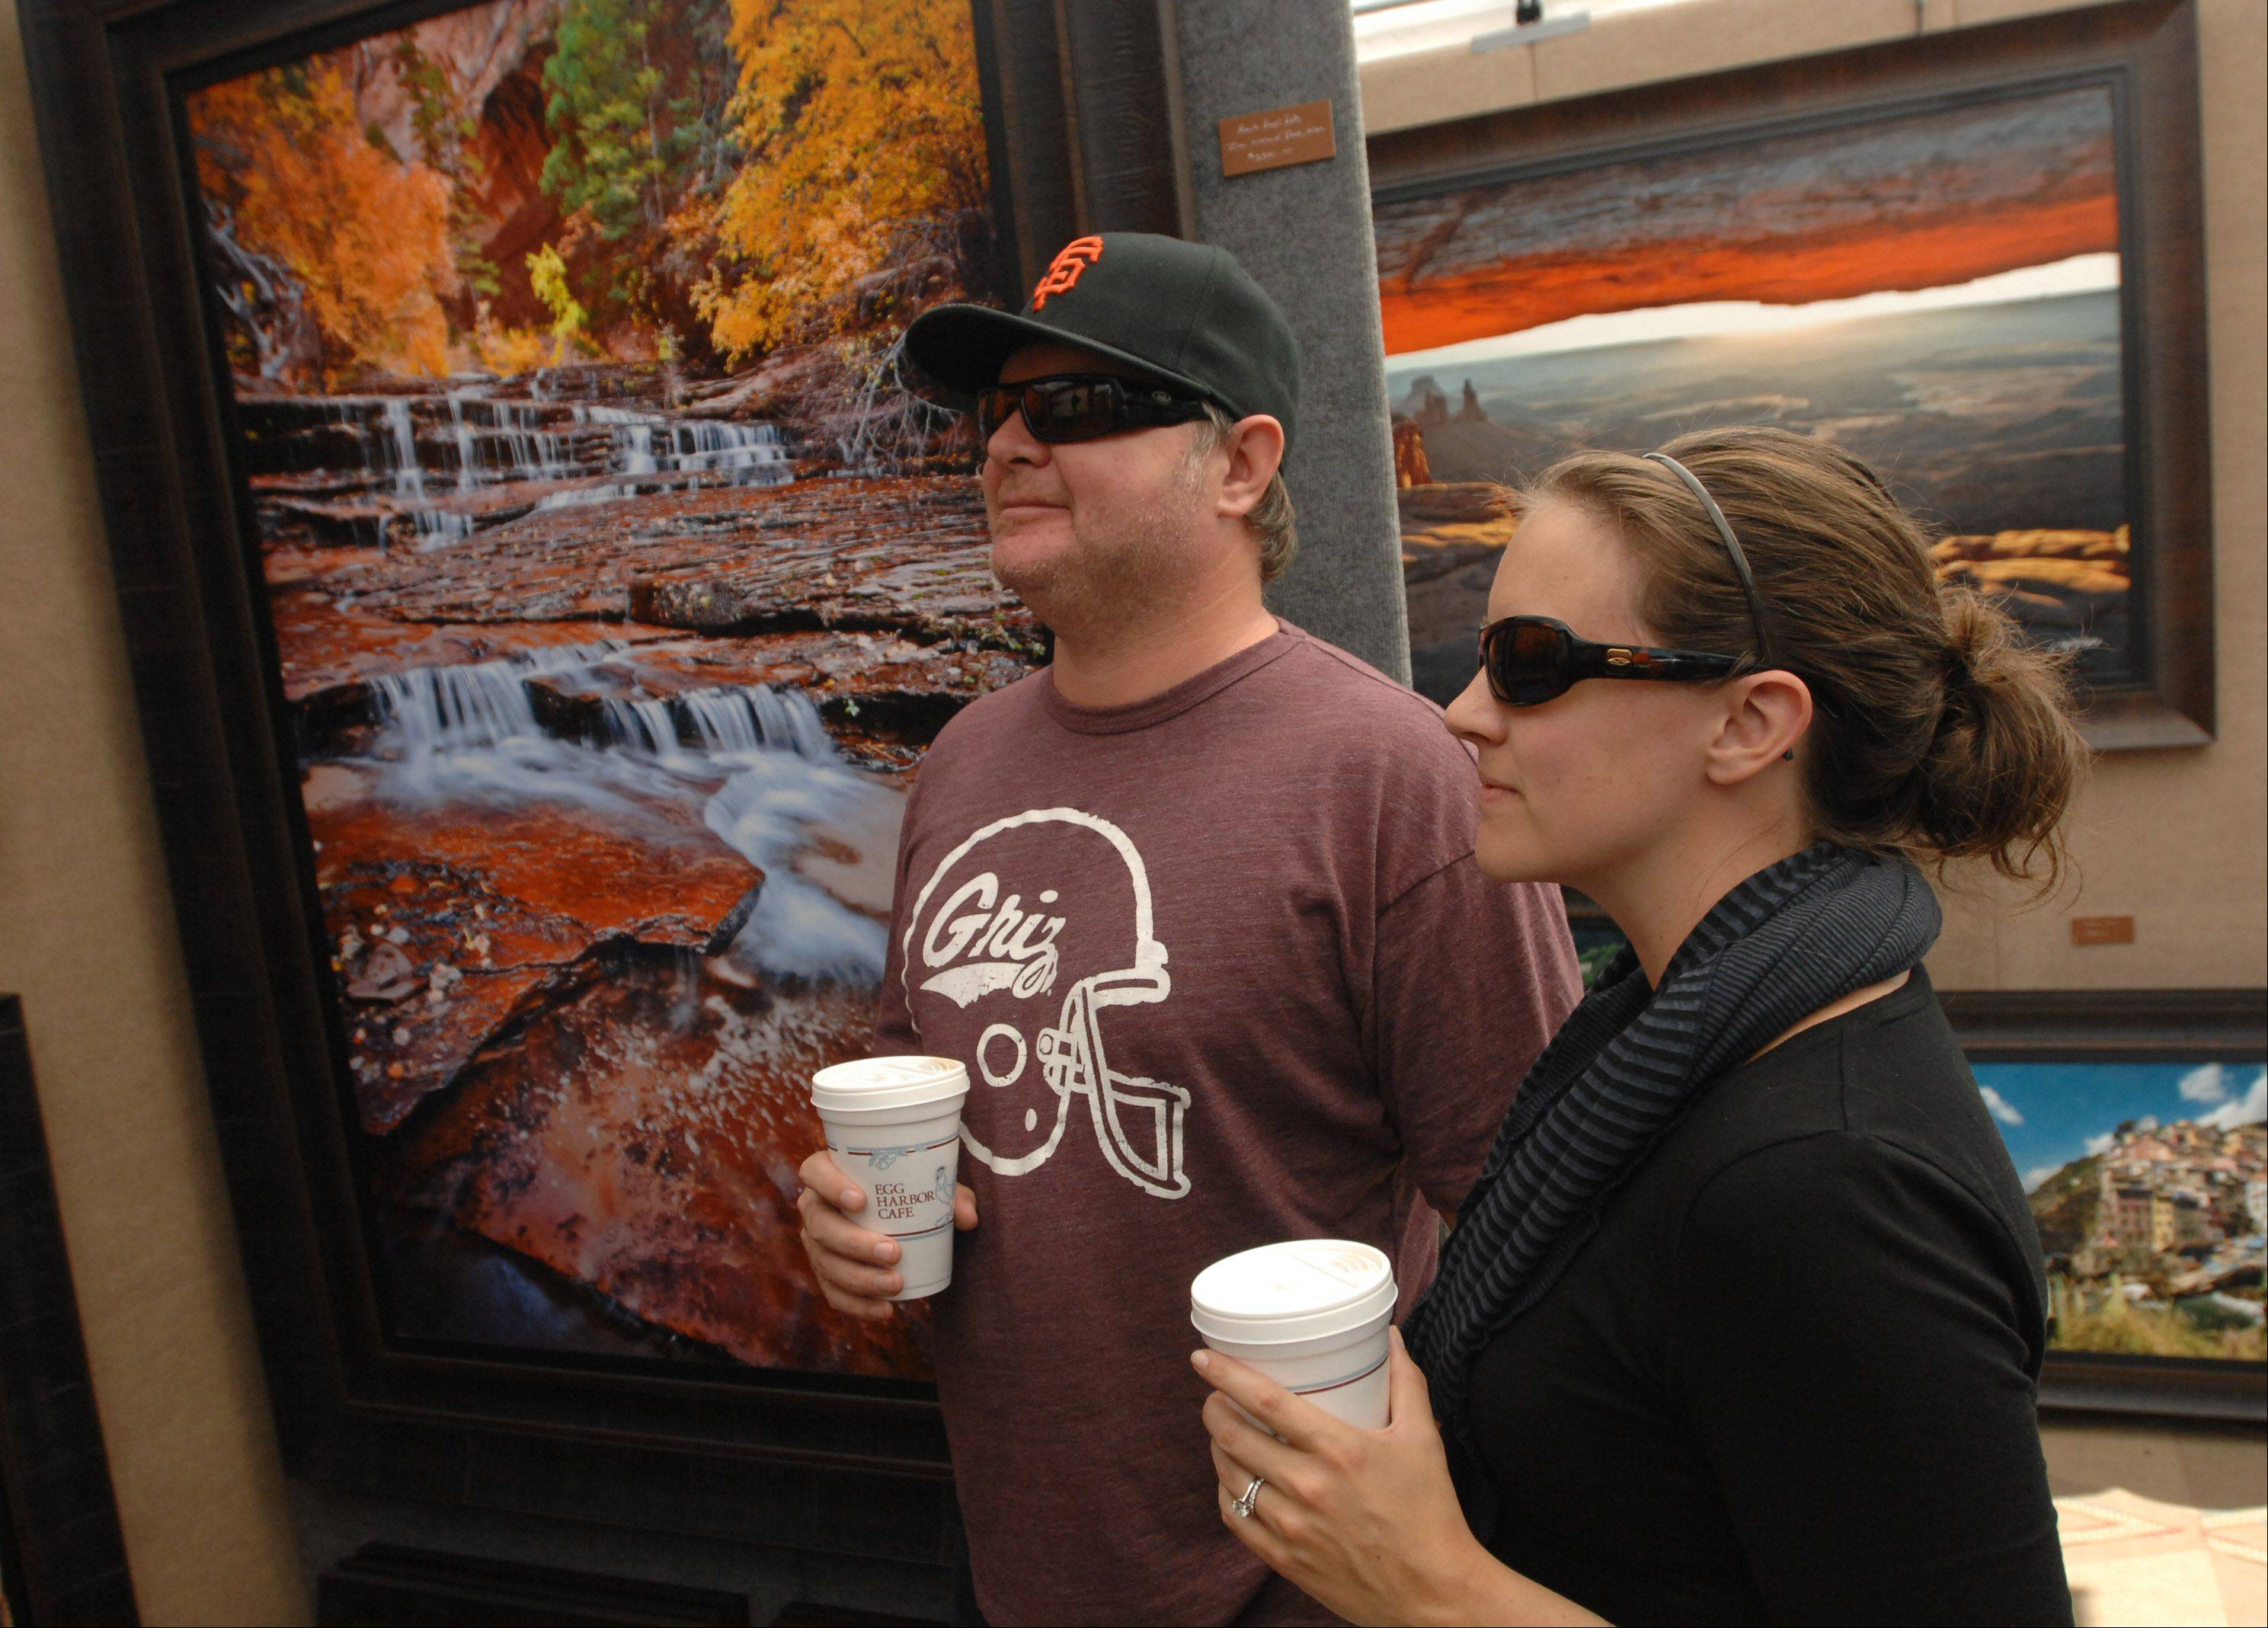 Tim and Meghan Conti of Naperville view the work of Jason Pavalonis on Saturday during the Naperville Art League's 27th annual Riverwalk Fine Art Fair.